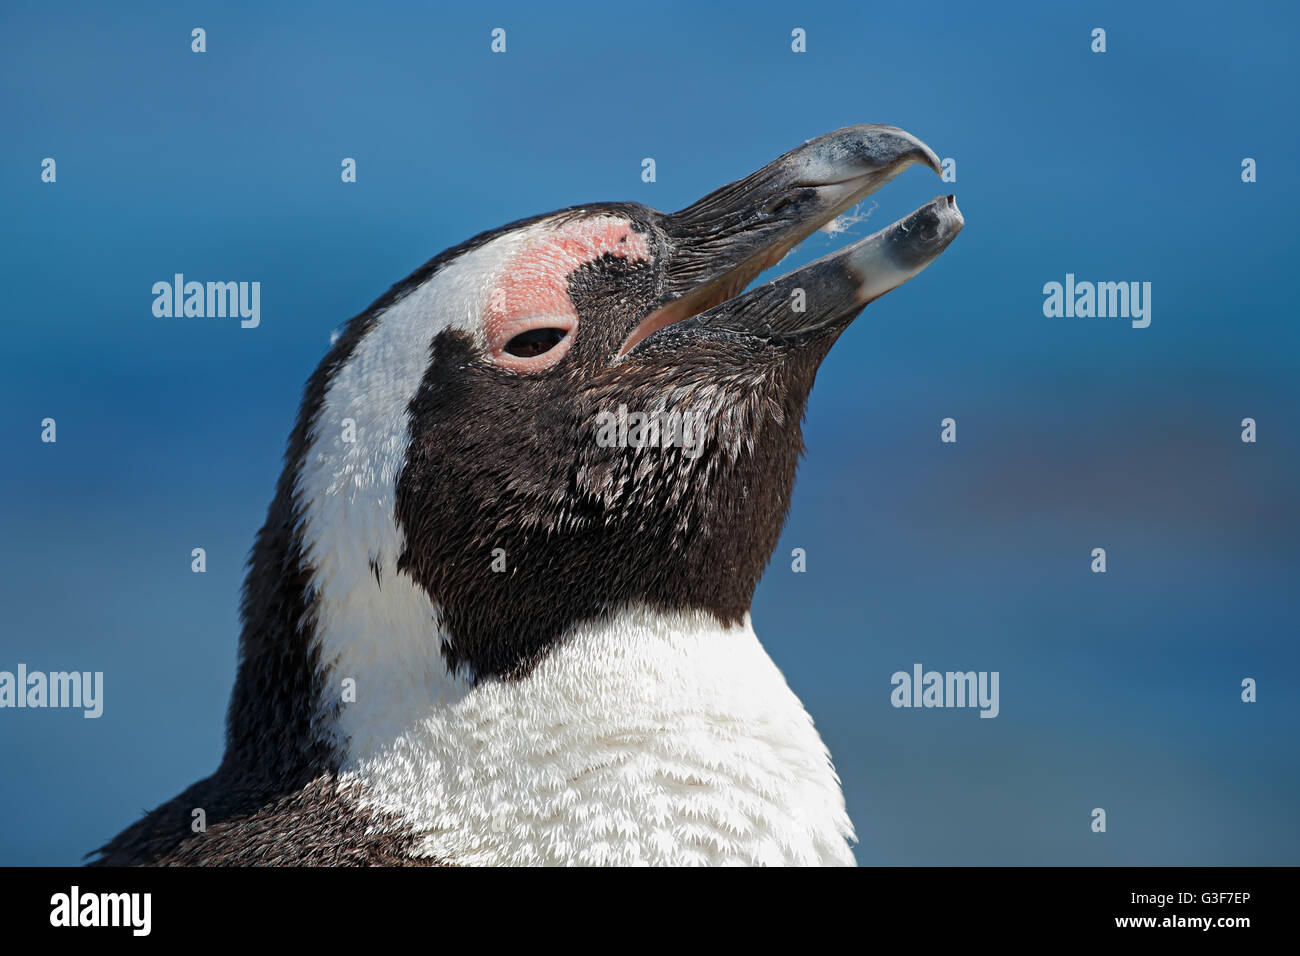 Portrait of an African penguin (Spheniscus demersus), Western Cape, South Africa - Stock Image